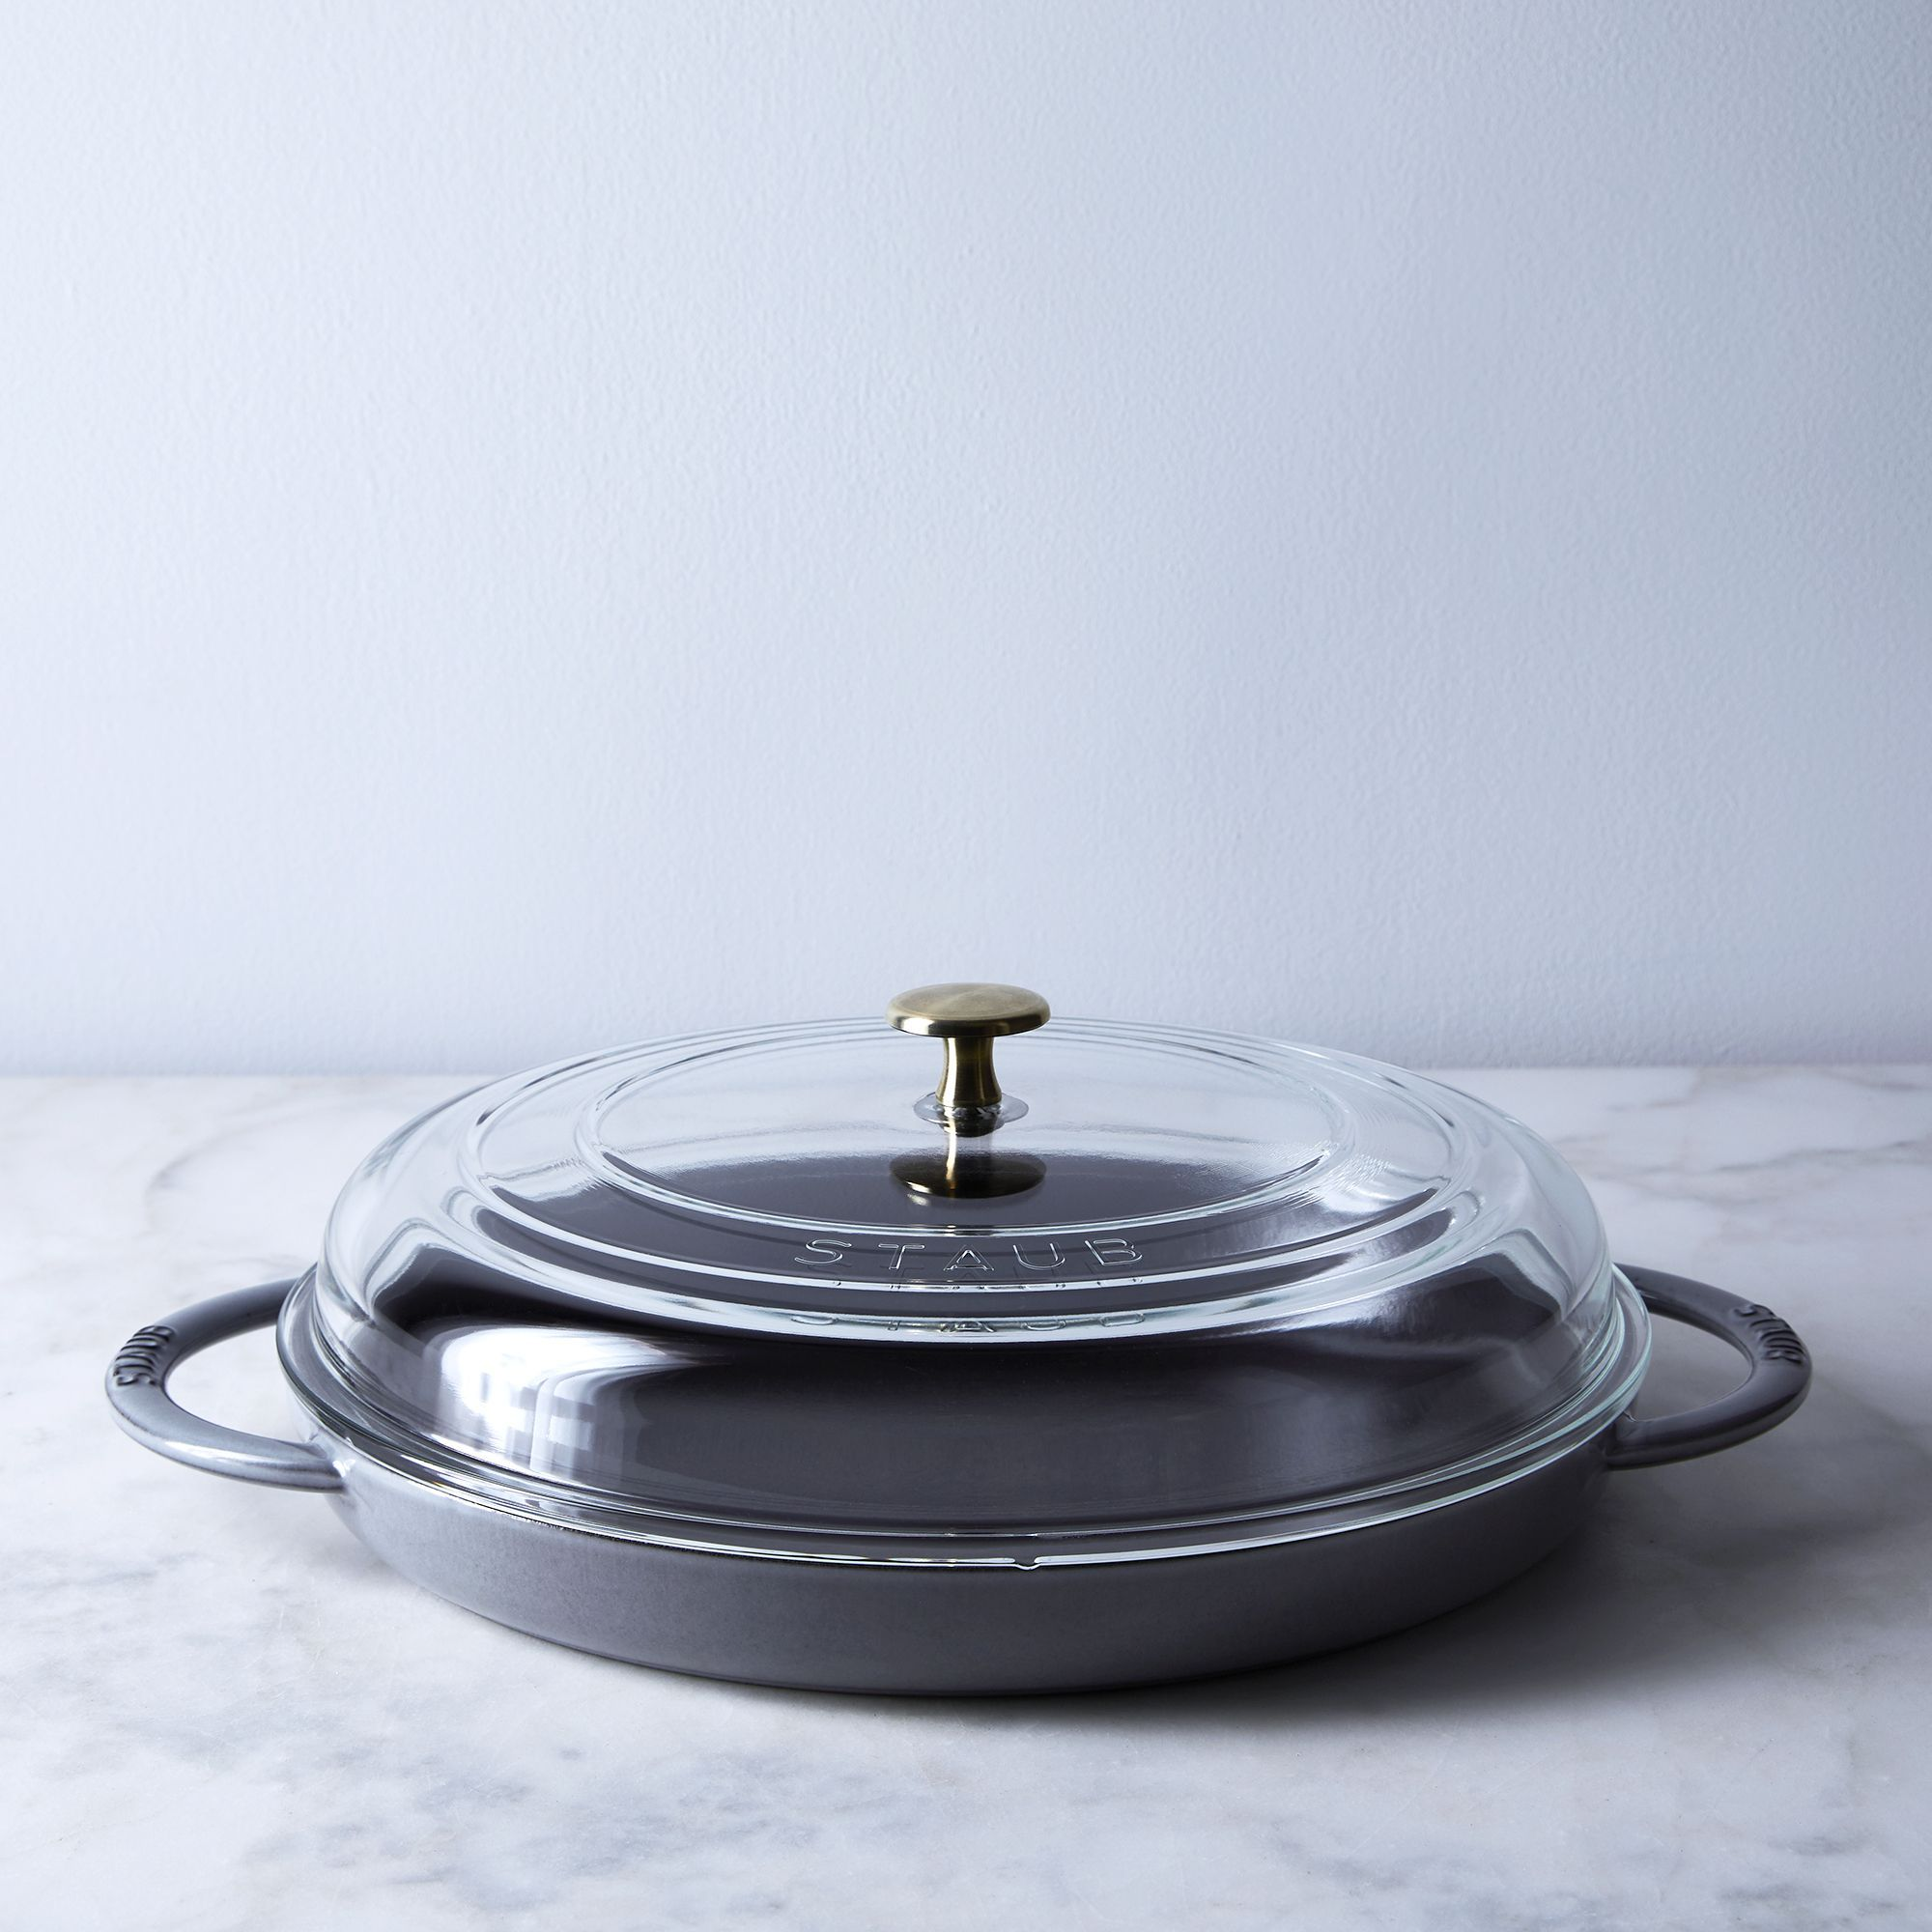 Food52 X Staub Steam Griddle With Glass Lid In 2020 Food 52 Staub Pizza Bake